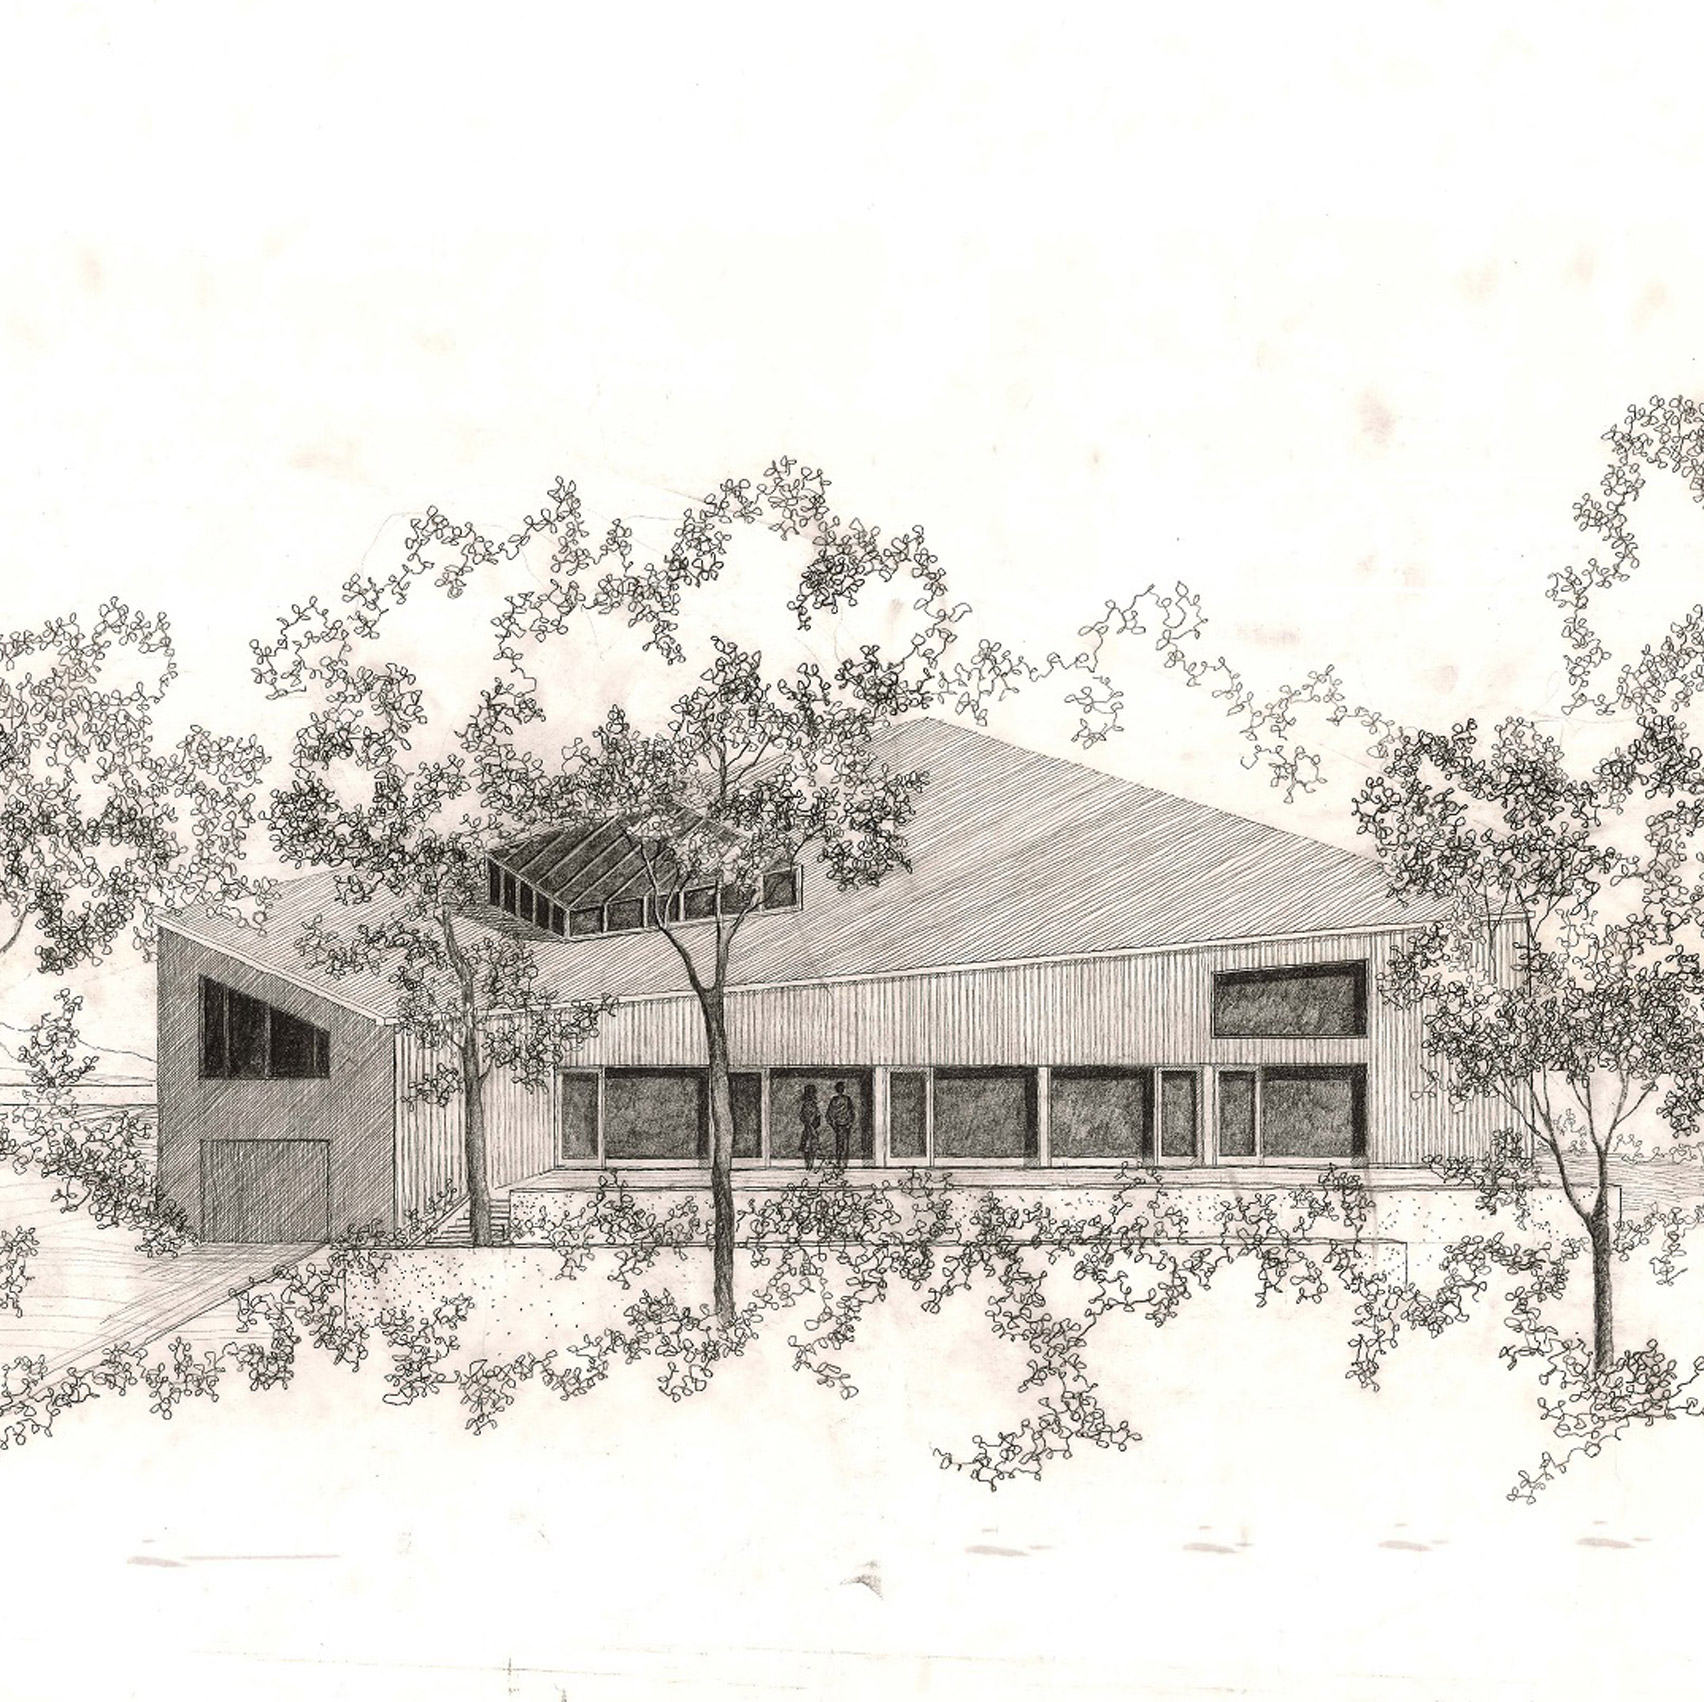 Sketch by Frank Gehry